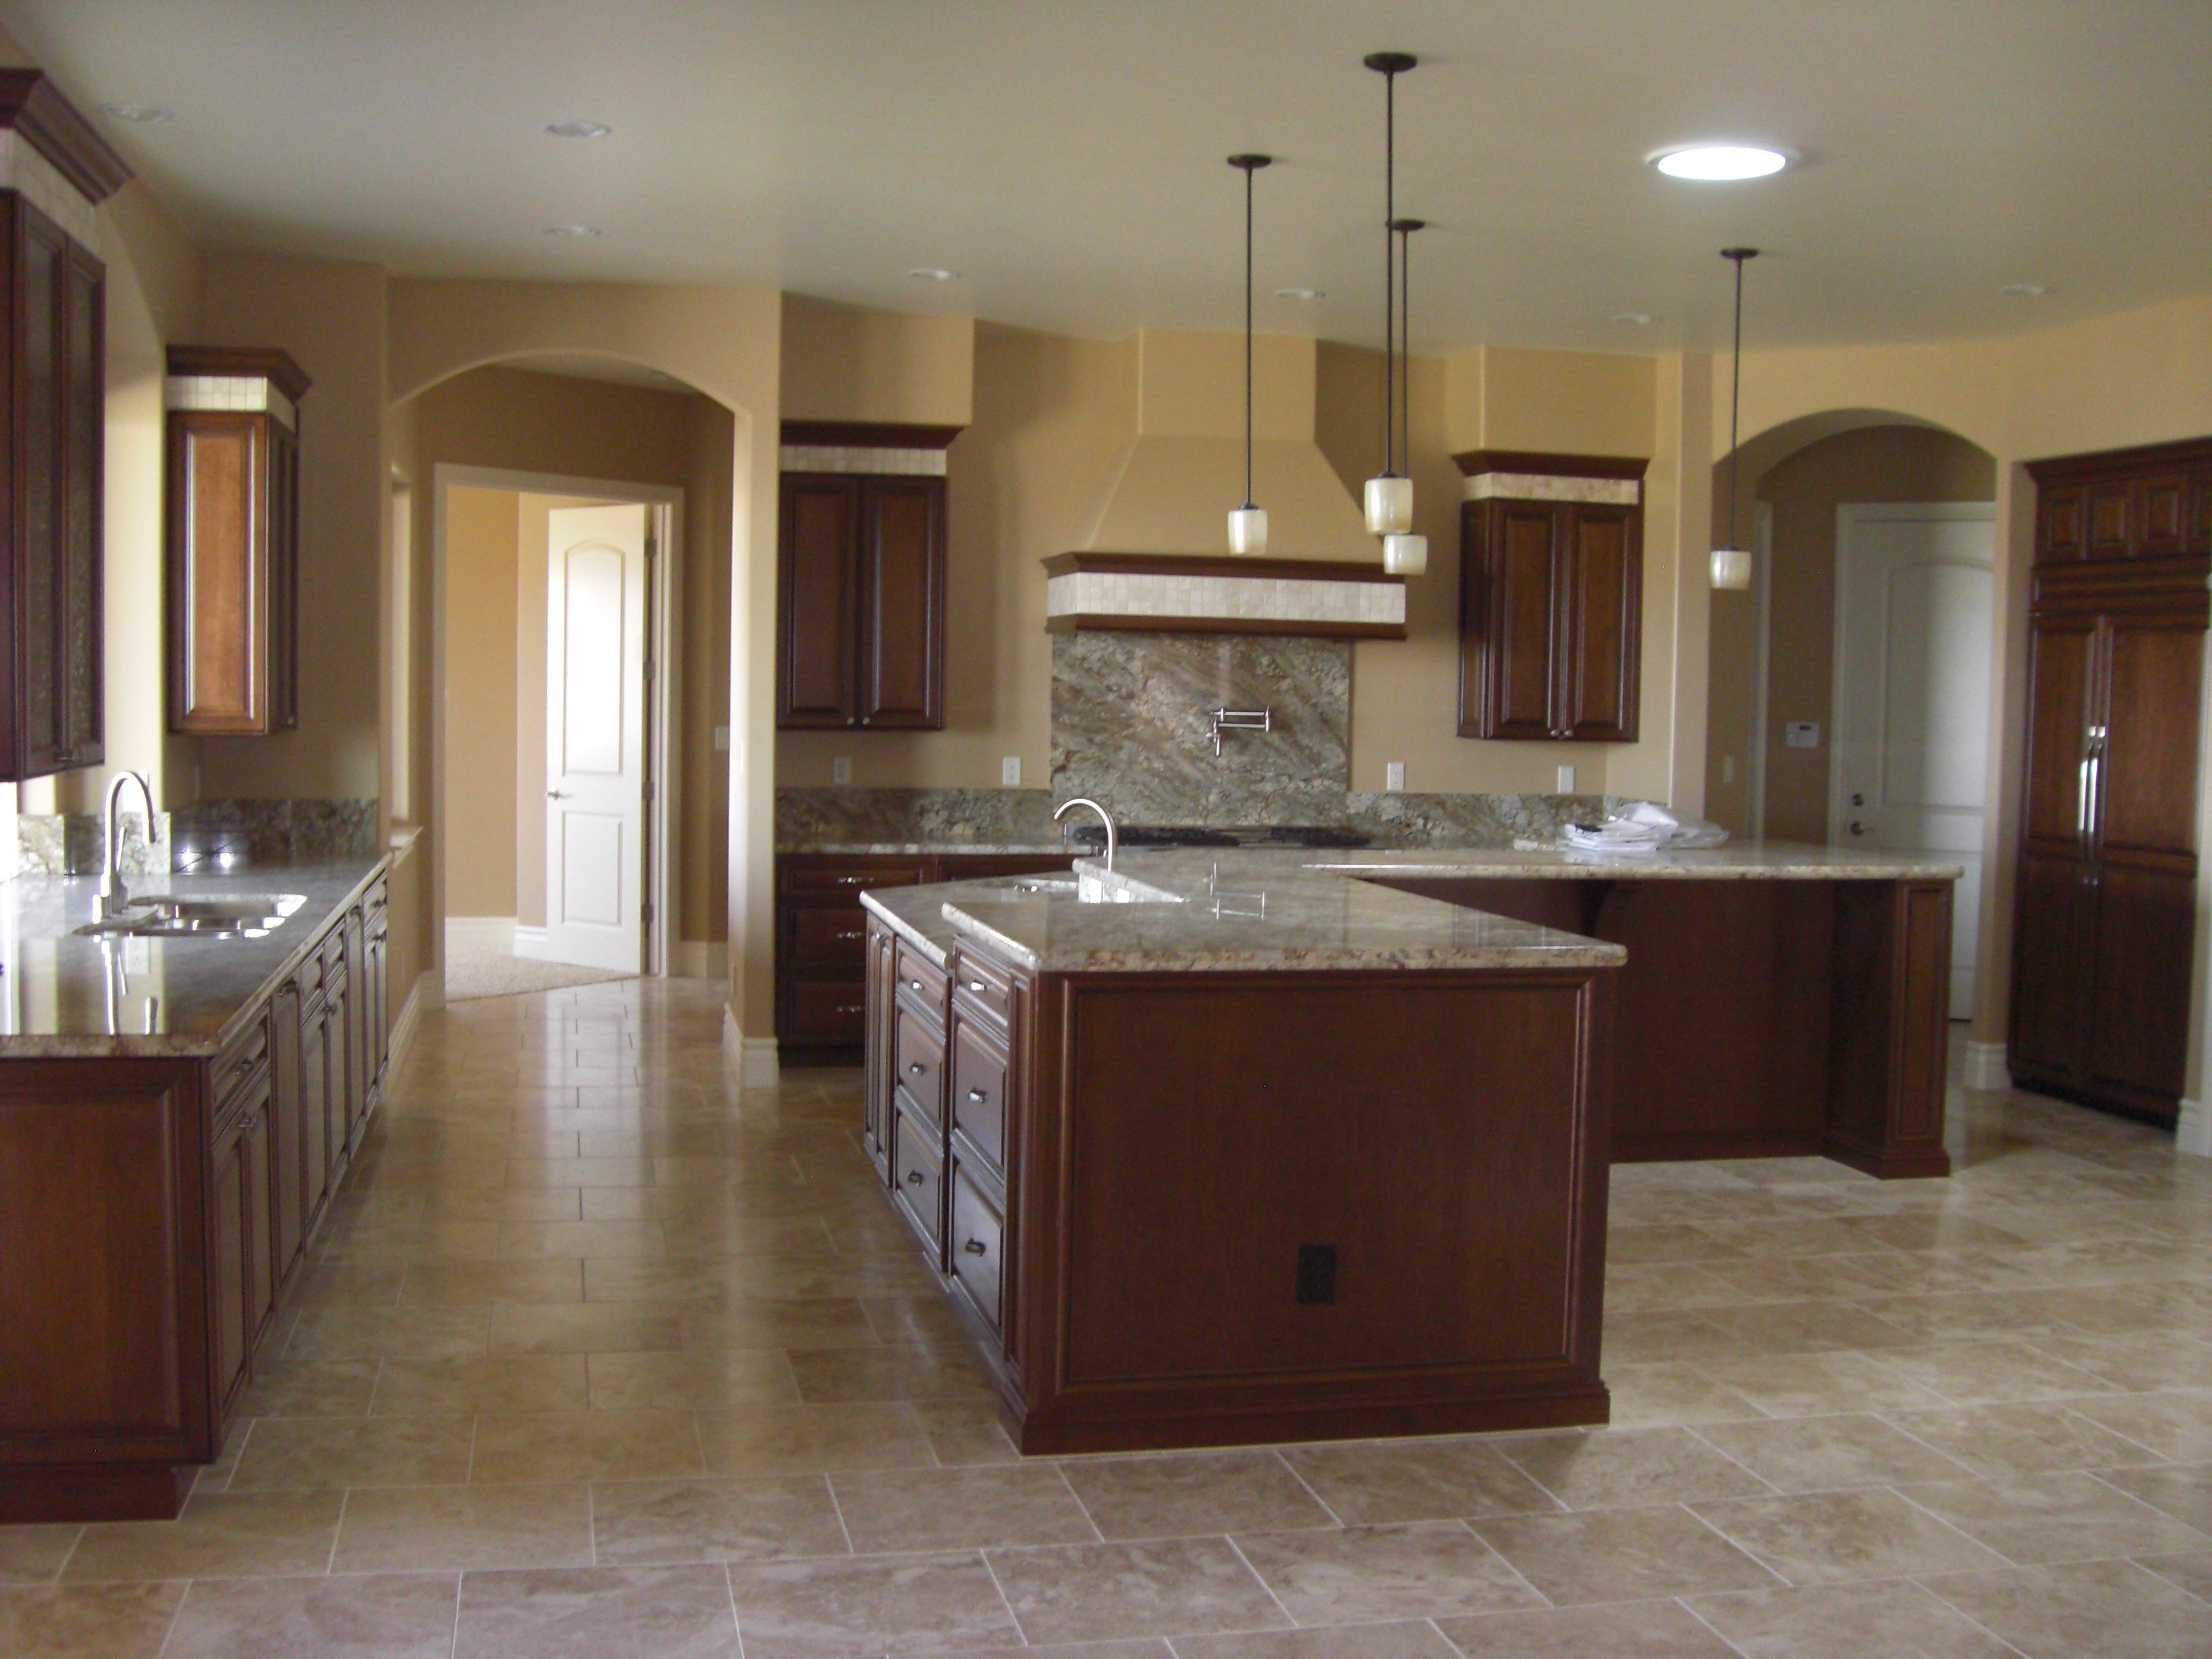 Travertine Floors In Kitchen Kitchen Granite Slab Counters Cherry Cabinets Travertine 2x2